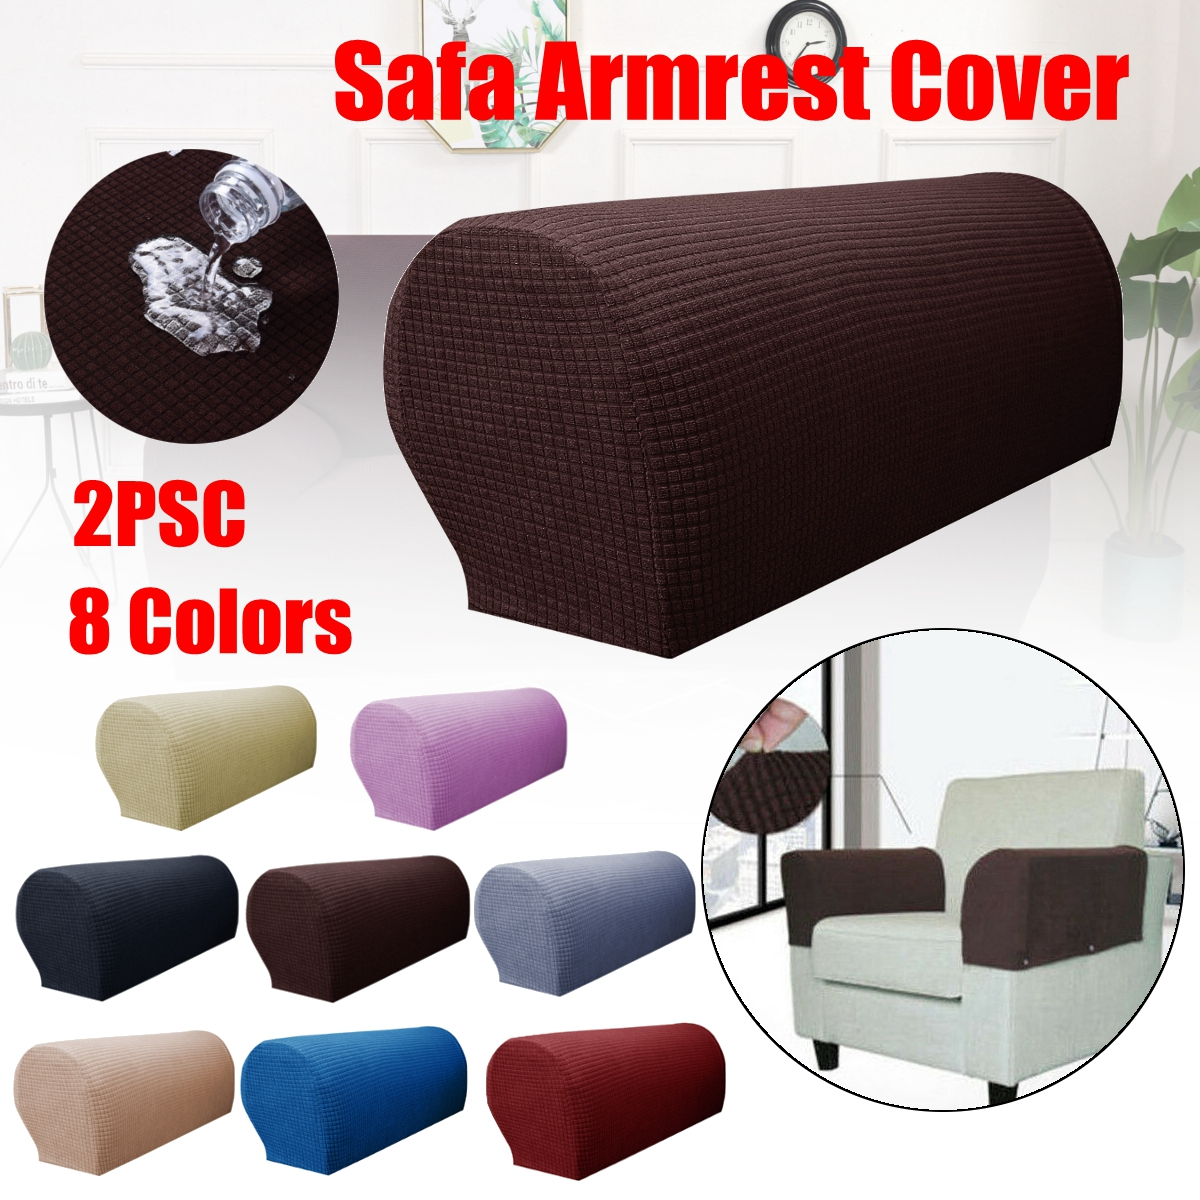 2PCS Premium Furniture Armrest Covers Sofa Couch Chair Arm Protectors Stretchy